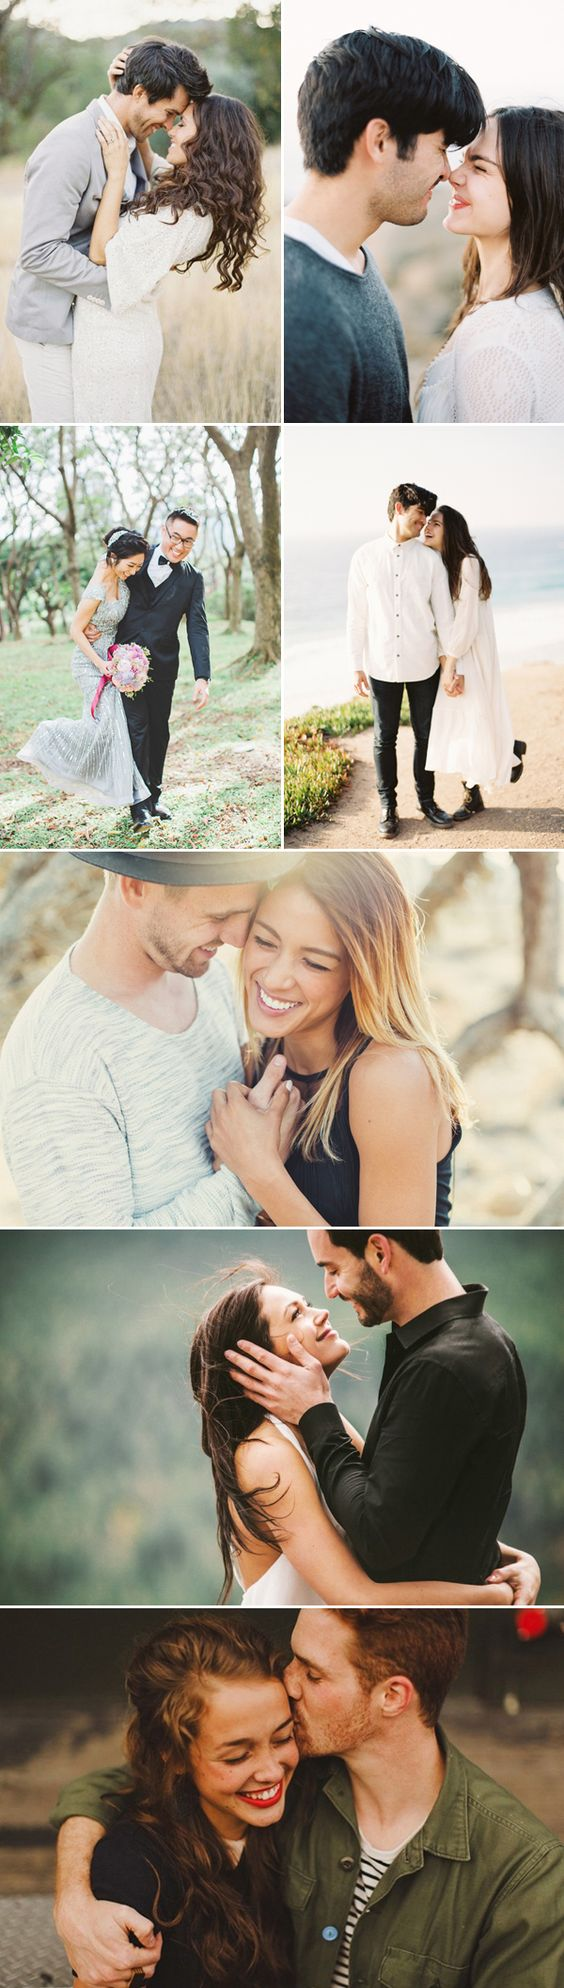 24 Sweet Engagement Photos that Prove Love Is All You Need!: